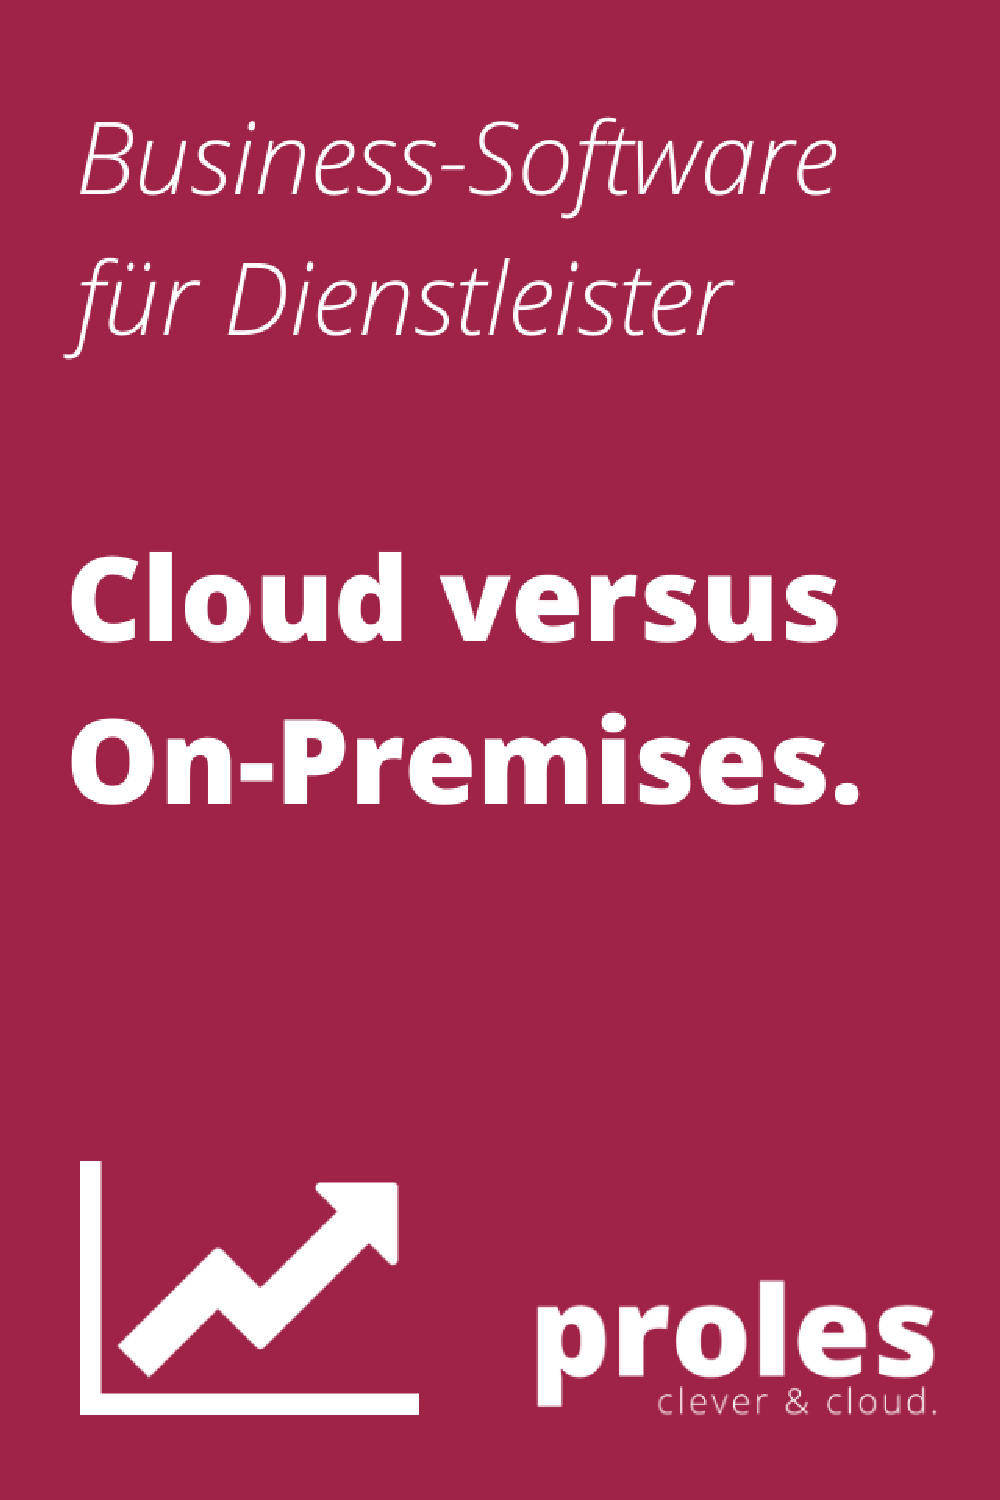 Business-Software für Dienstleister: Cloud versus On-Premises